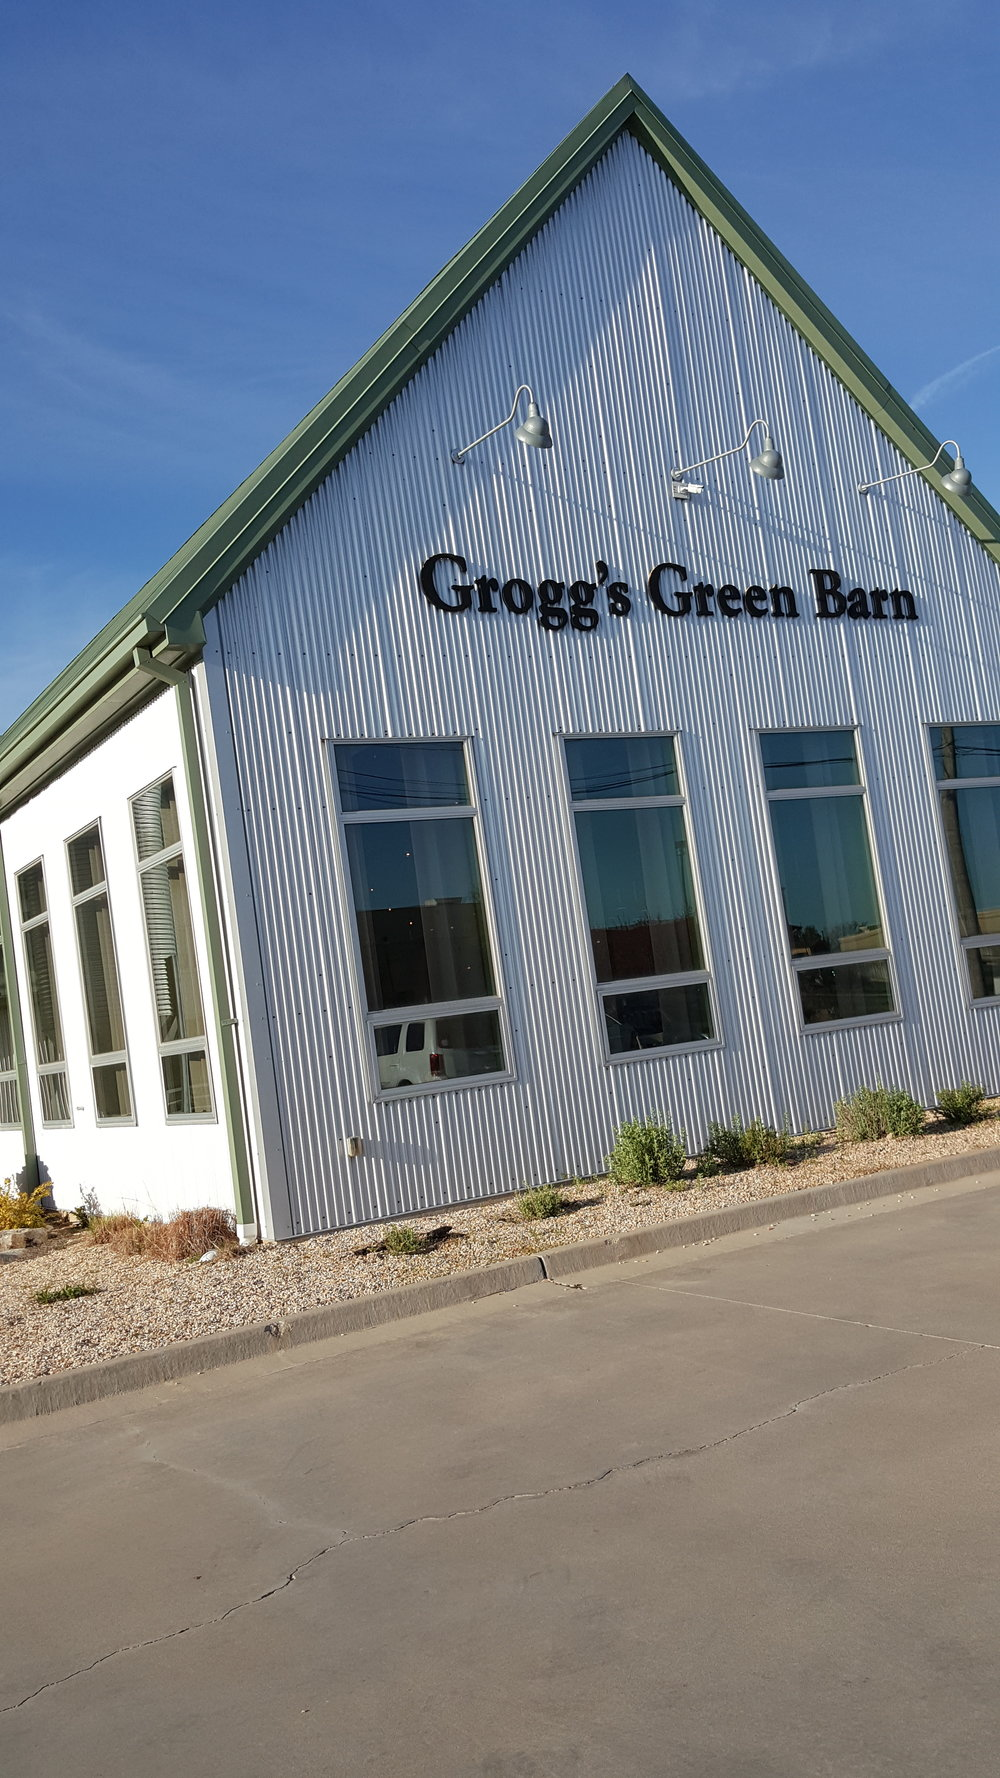 - The Reserve at Grogg's Green Barn hosts dinners on Friday and Saturday evenings throughout the growing season.